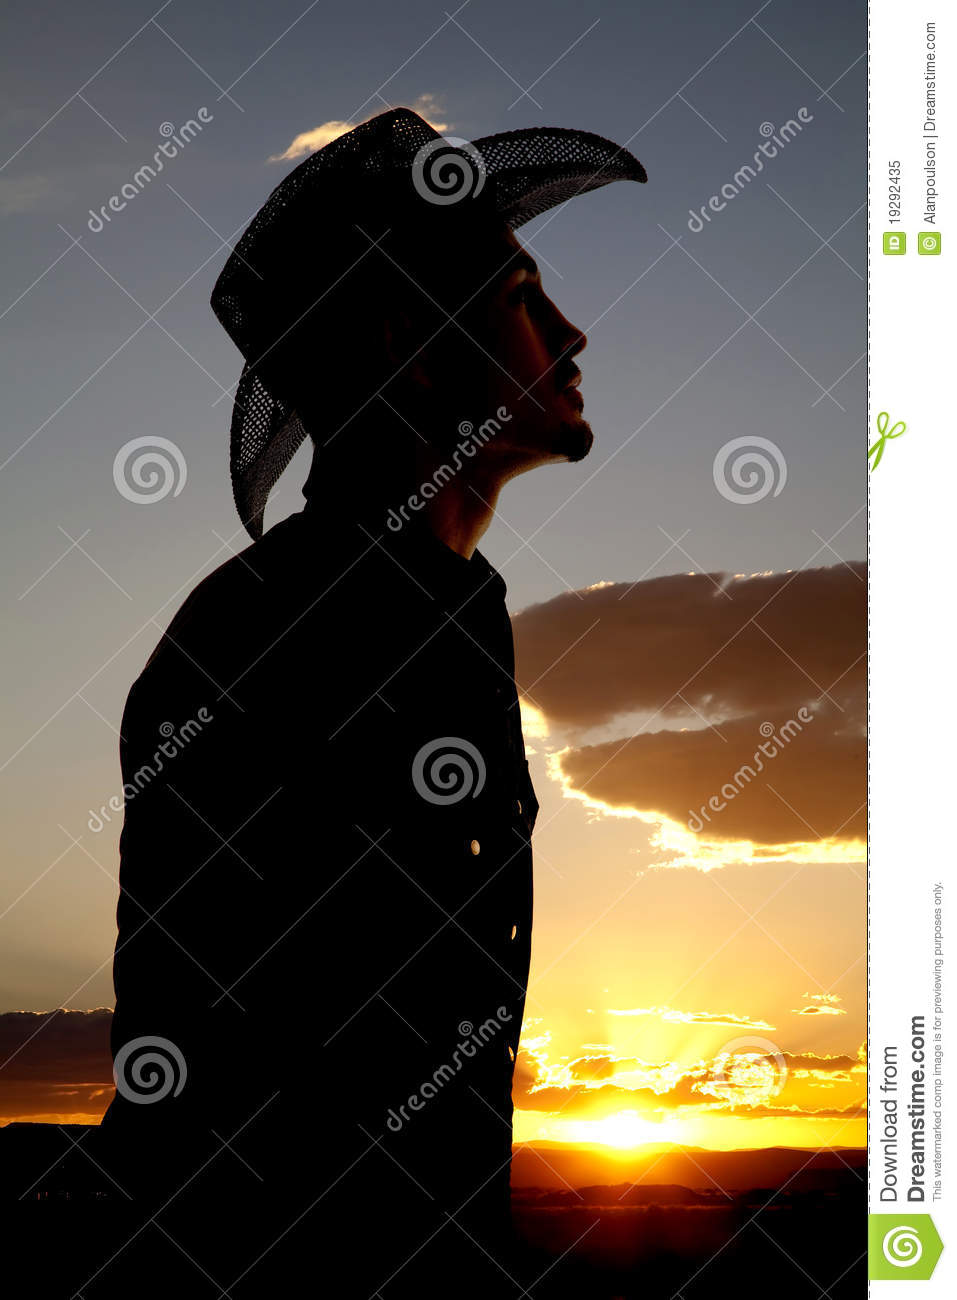 Cowboy Silhouette Profile Stock Image Image Of Event